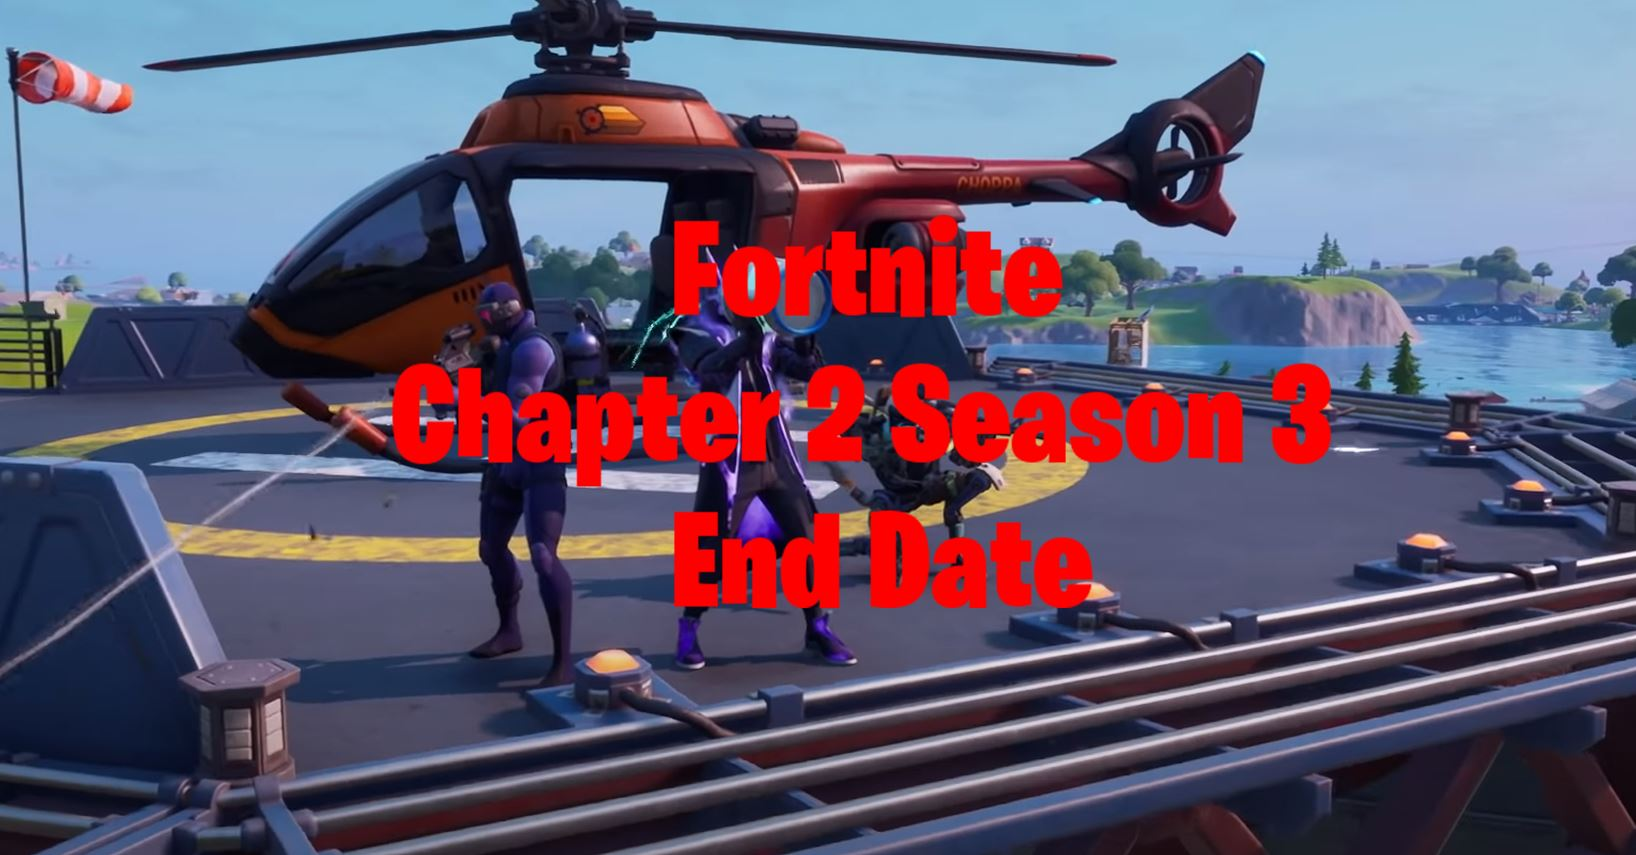 Is Fortnite getting banned? Apple's Fortnite App Store removal explained